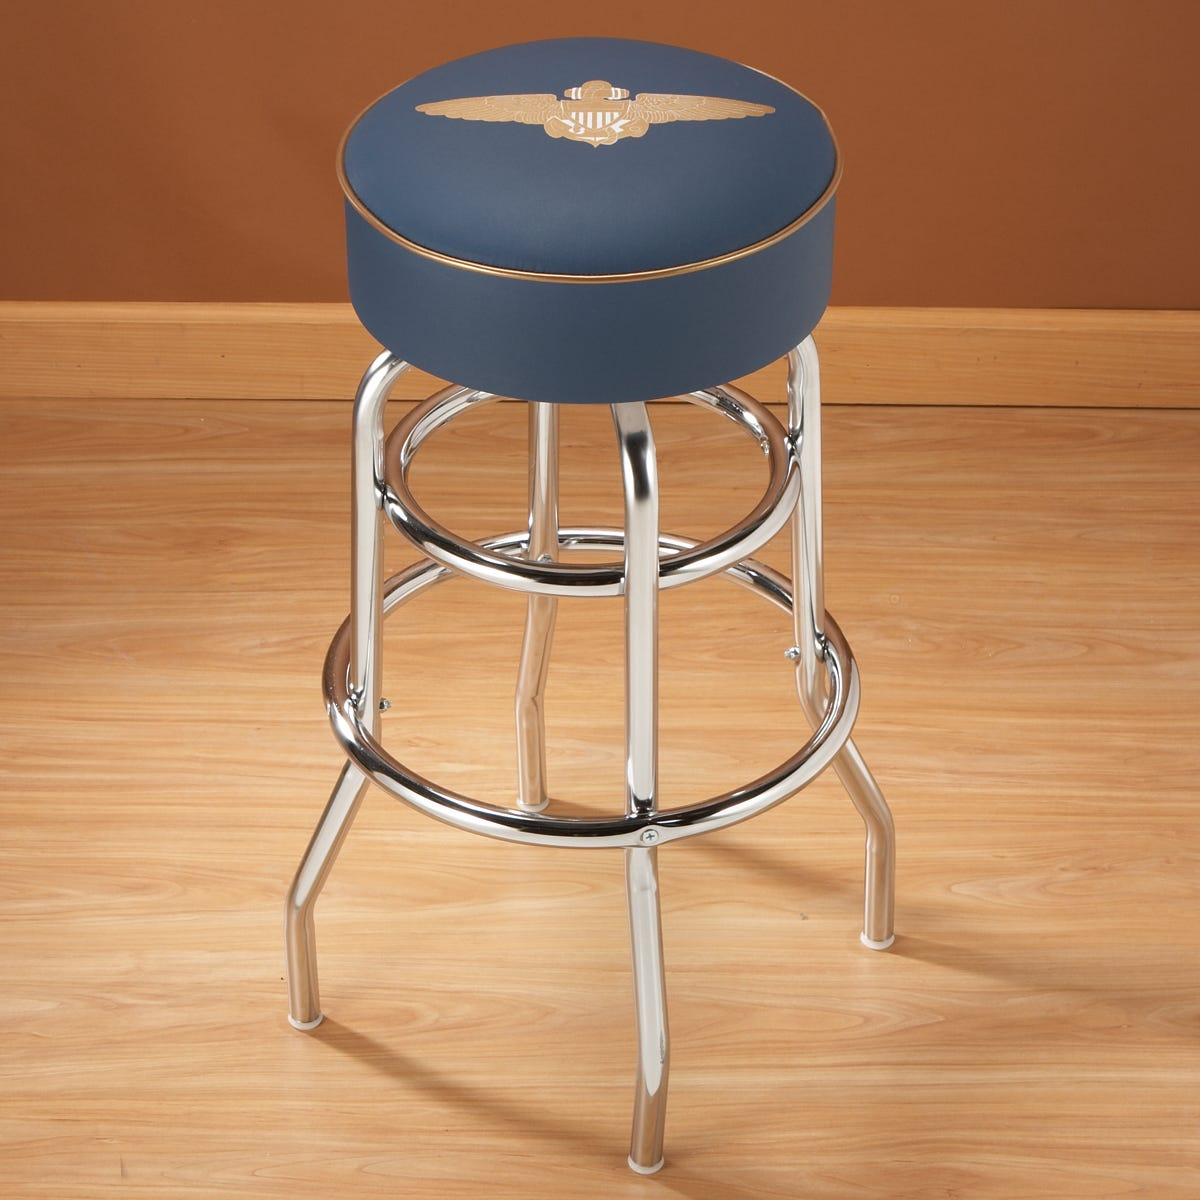 Navy Pilot Wings Bar Stool - from Sporty's Wright Bros Collection